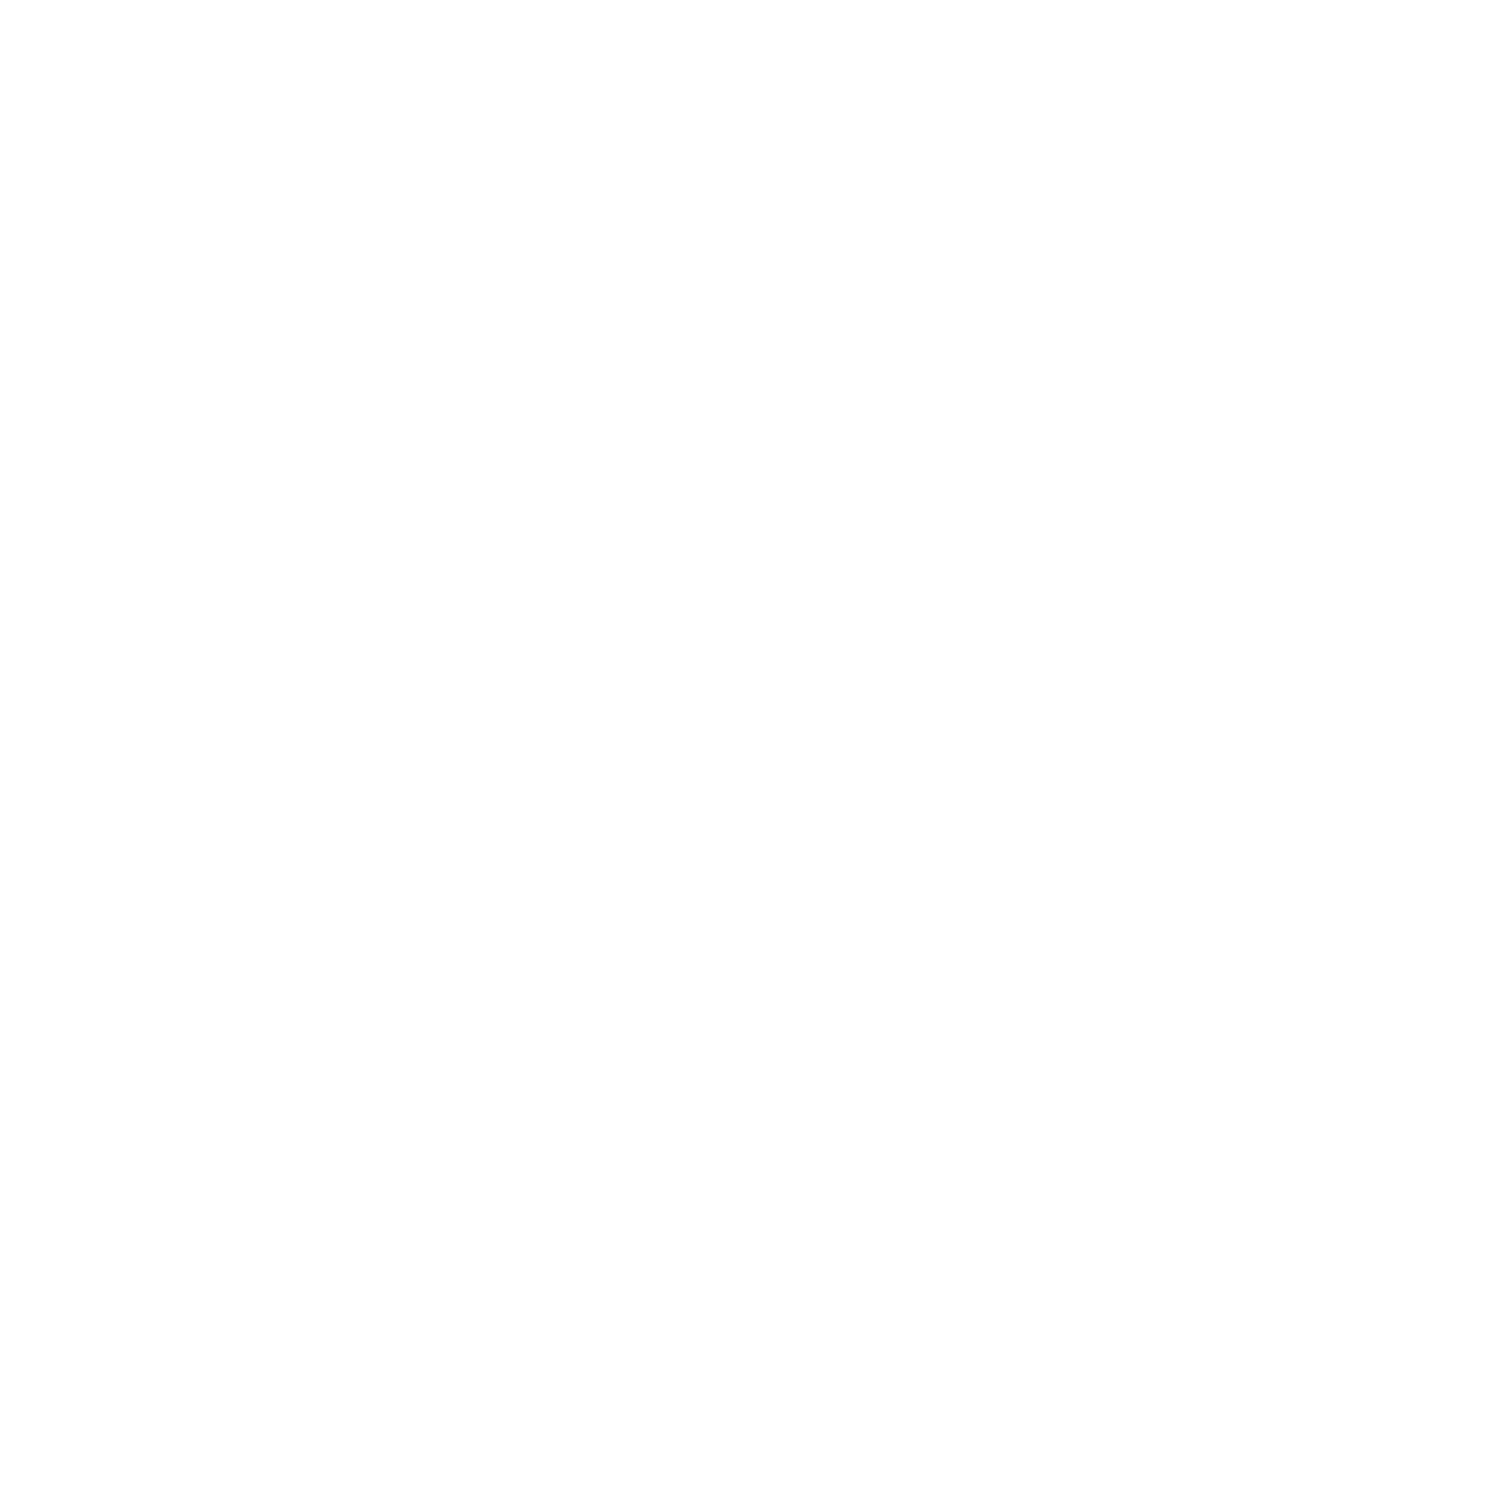 safety-center-logo-white